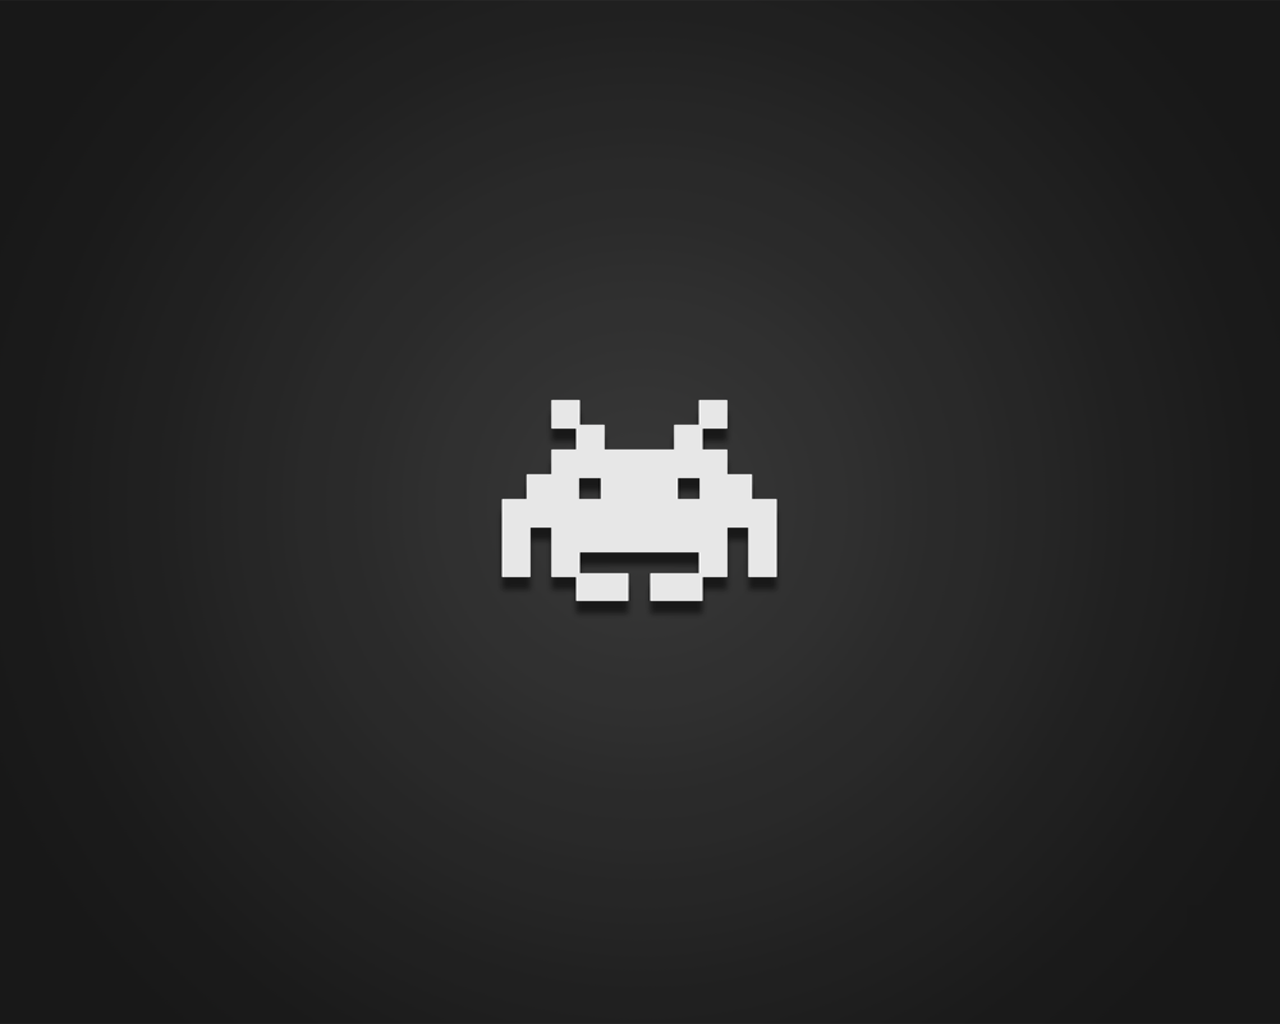 Space Invaders Wallpaper by Vellosia 1280x1024